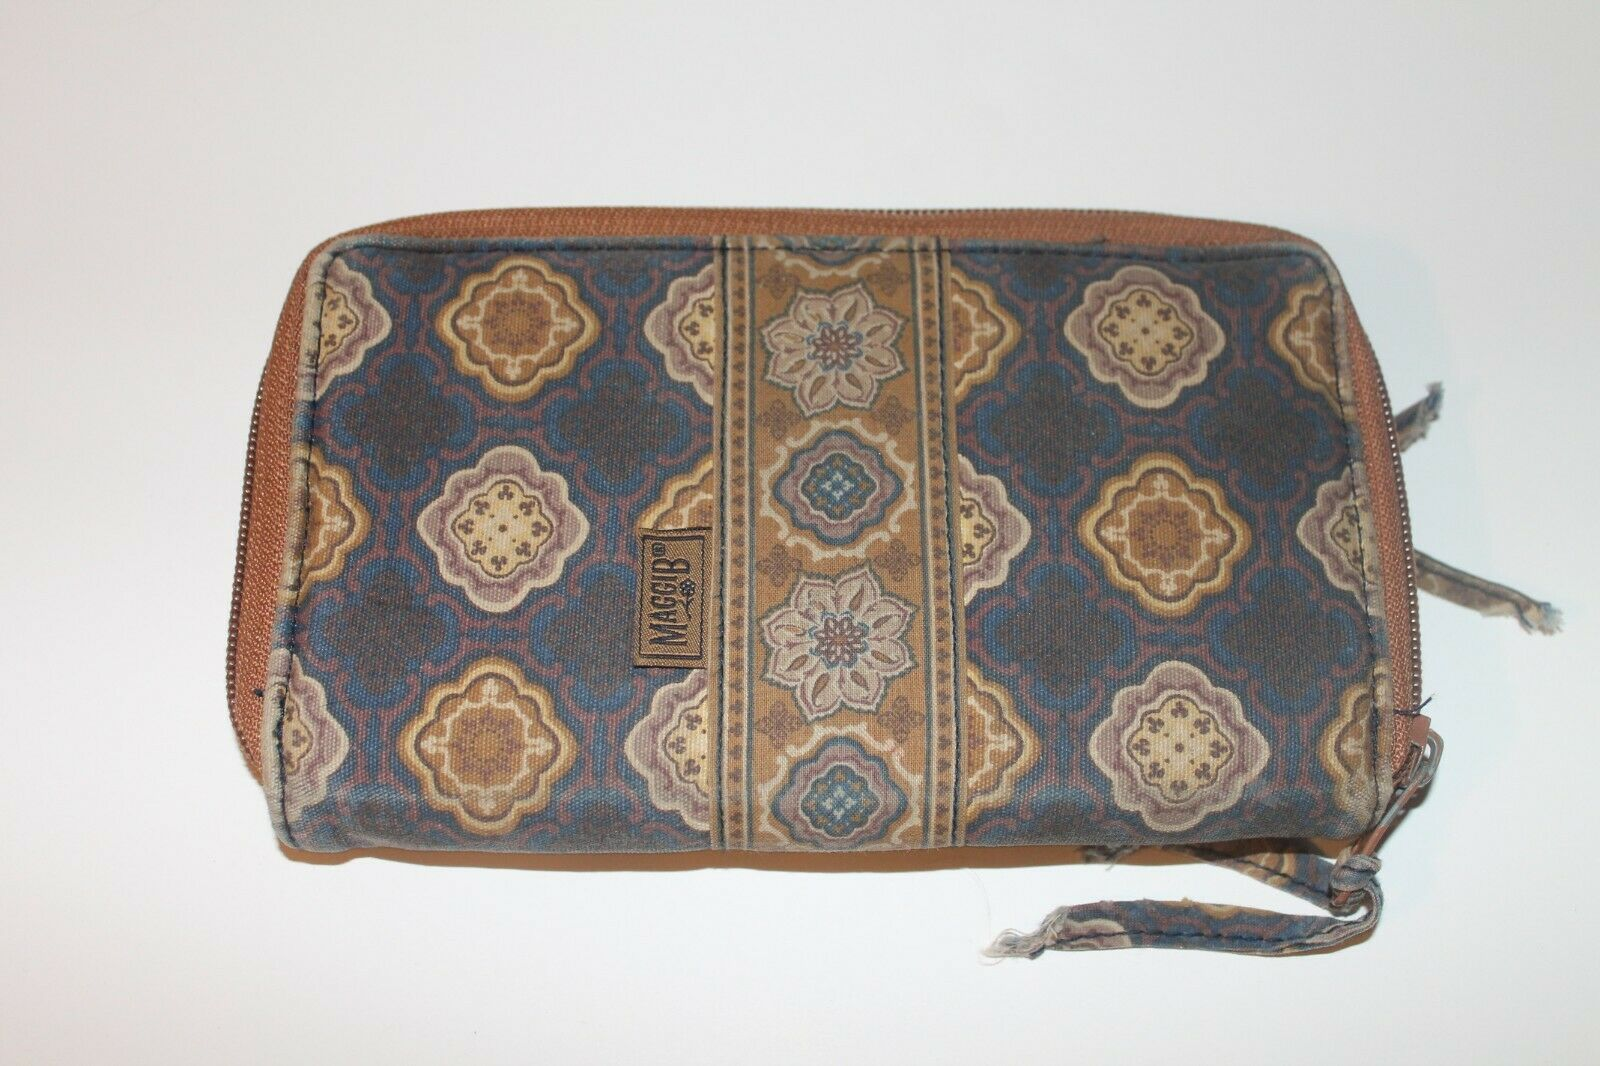 MAGGIB -Women's Zip Around Wallet-Blue and Brown Floral-Great Condition